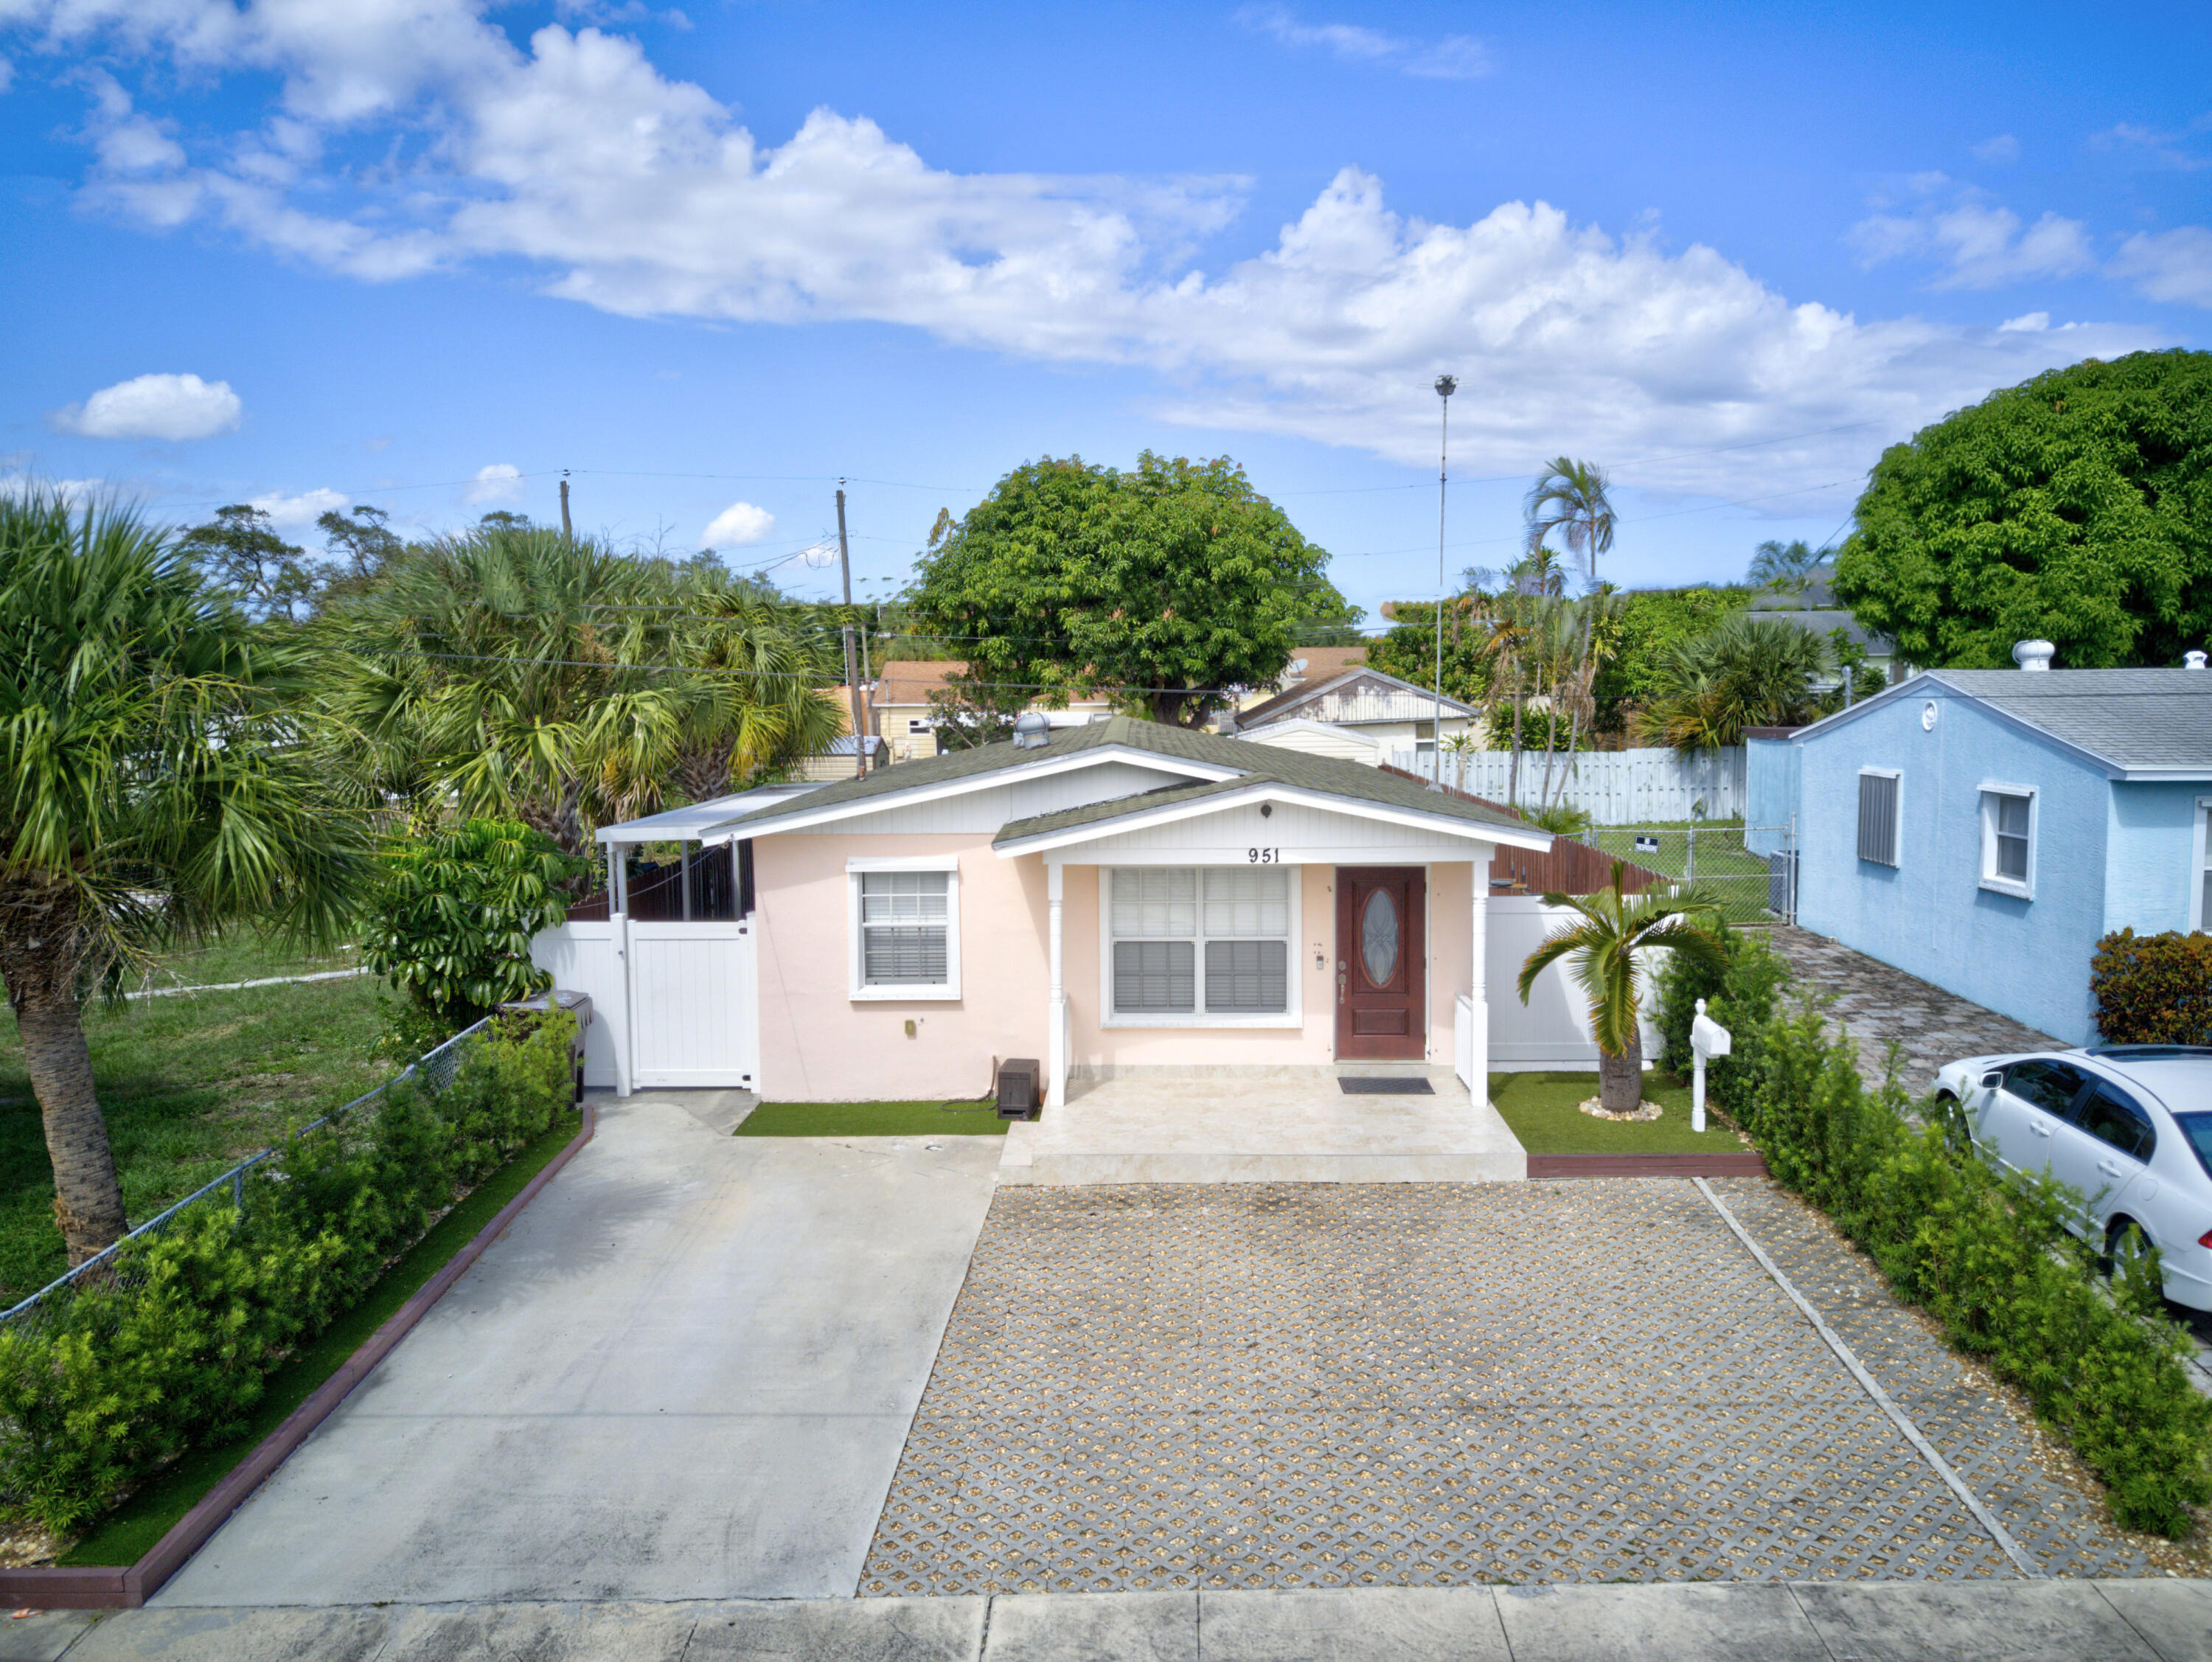 951 W Lakewood Road  For Sale 10751311, FL